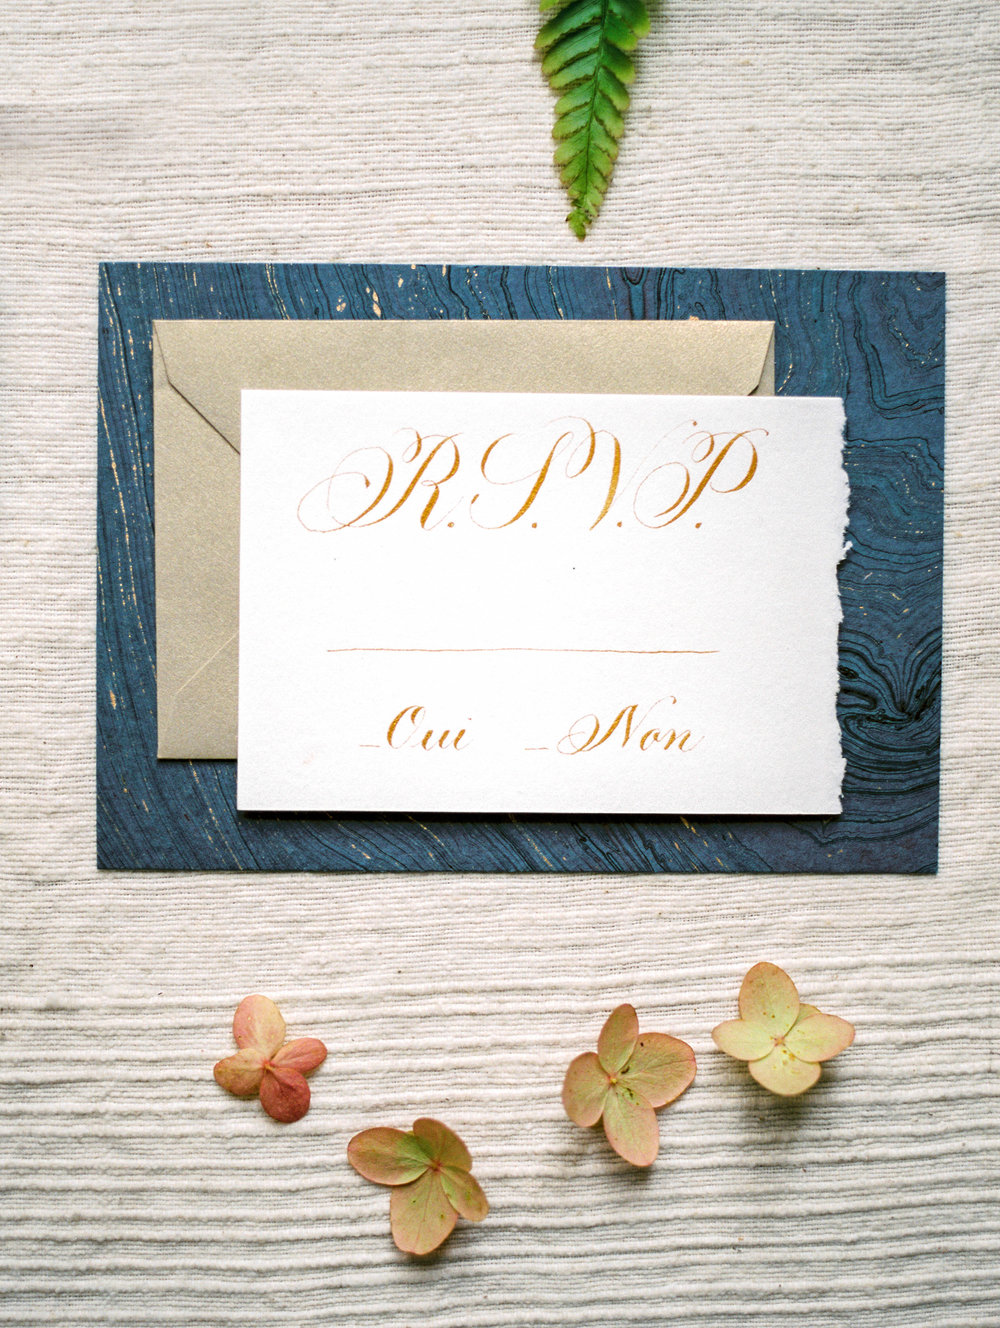 Blue and Gold Wedding Invitation - www.jleephotos.com